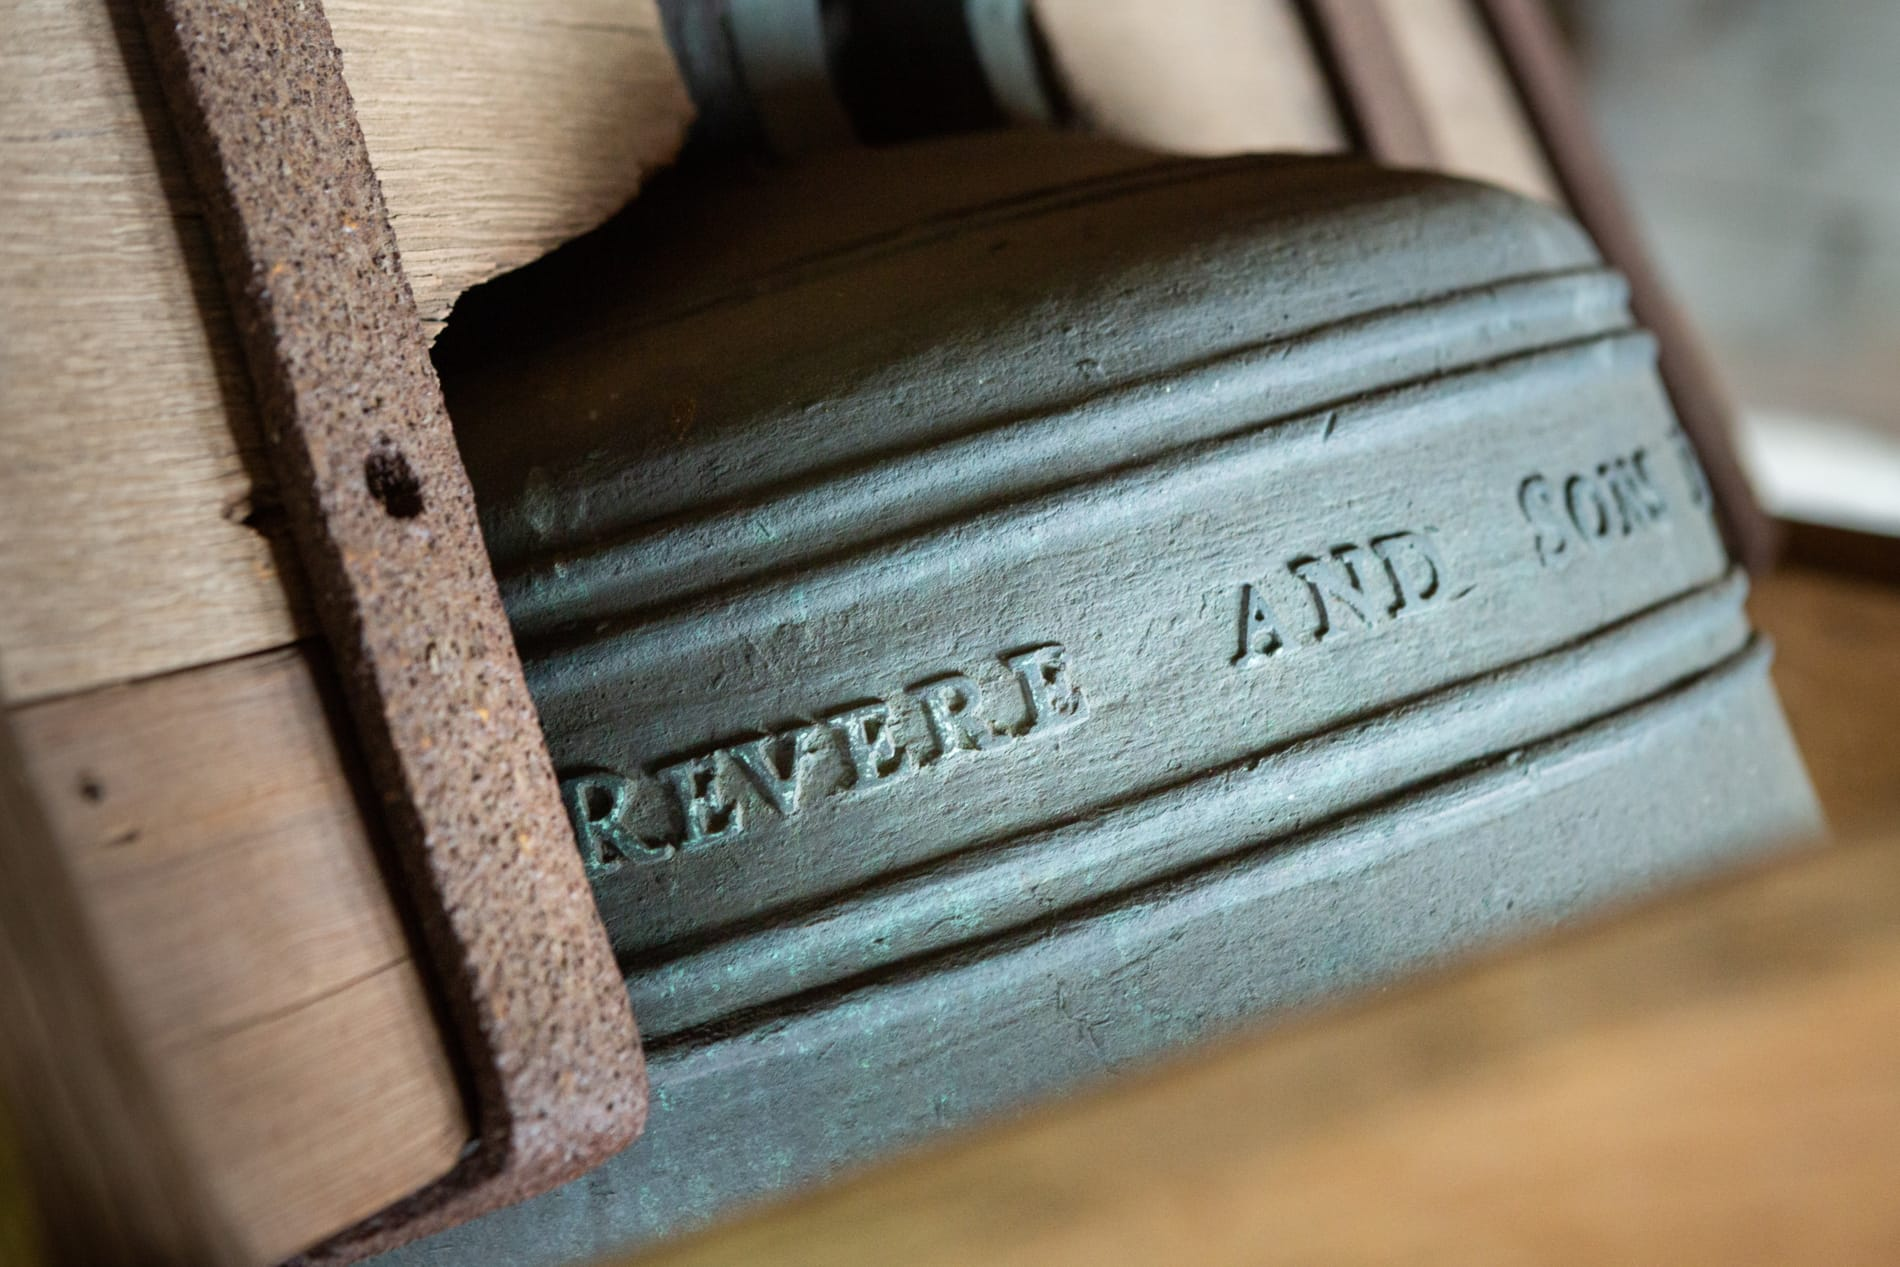 Church bell with inscription: